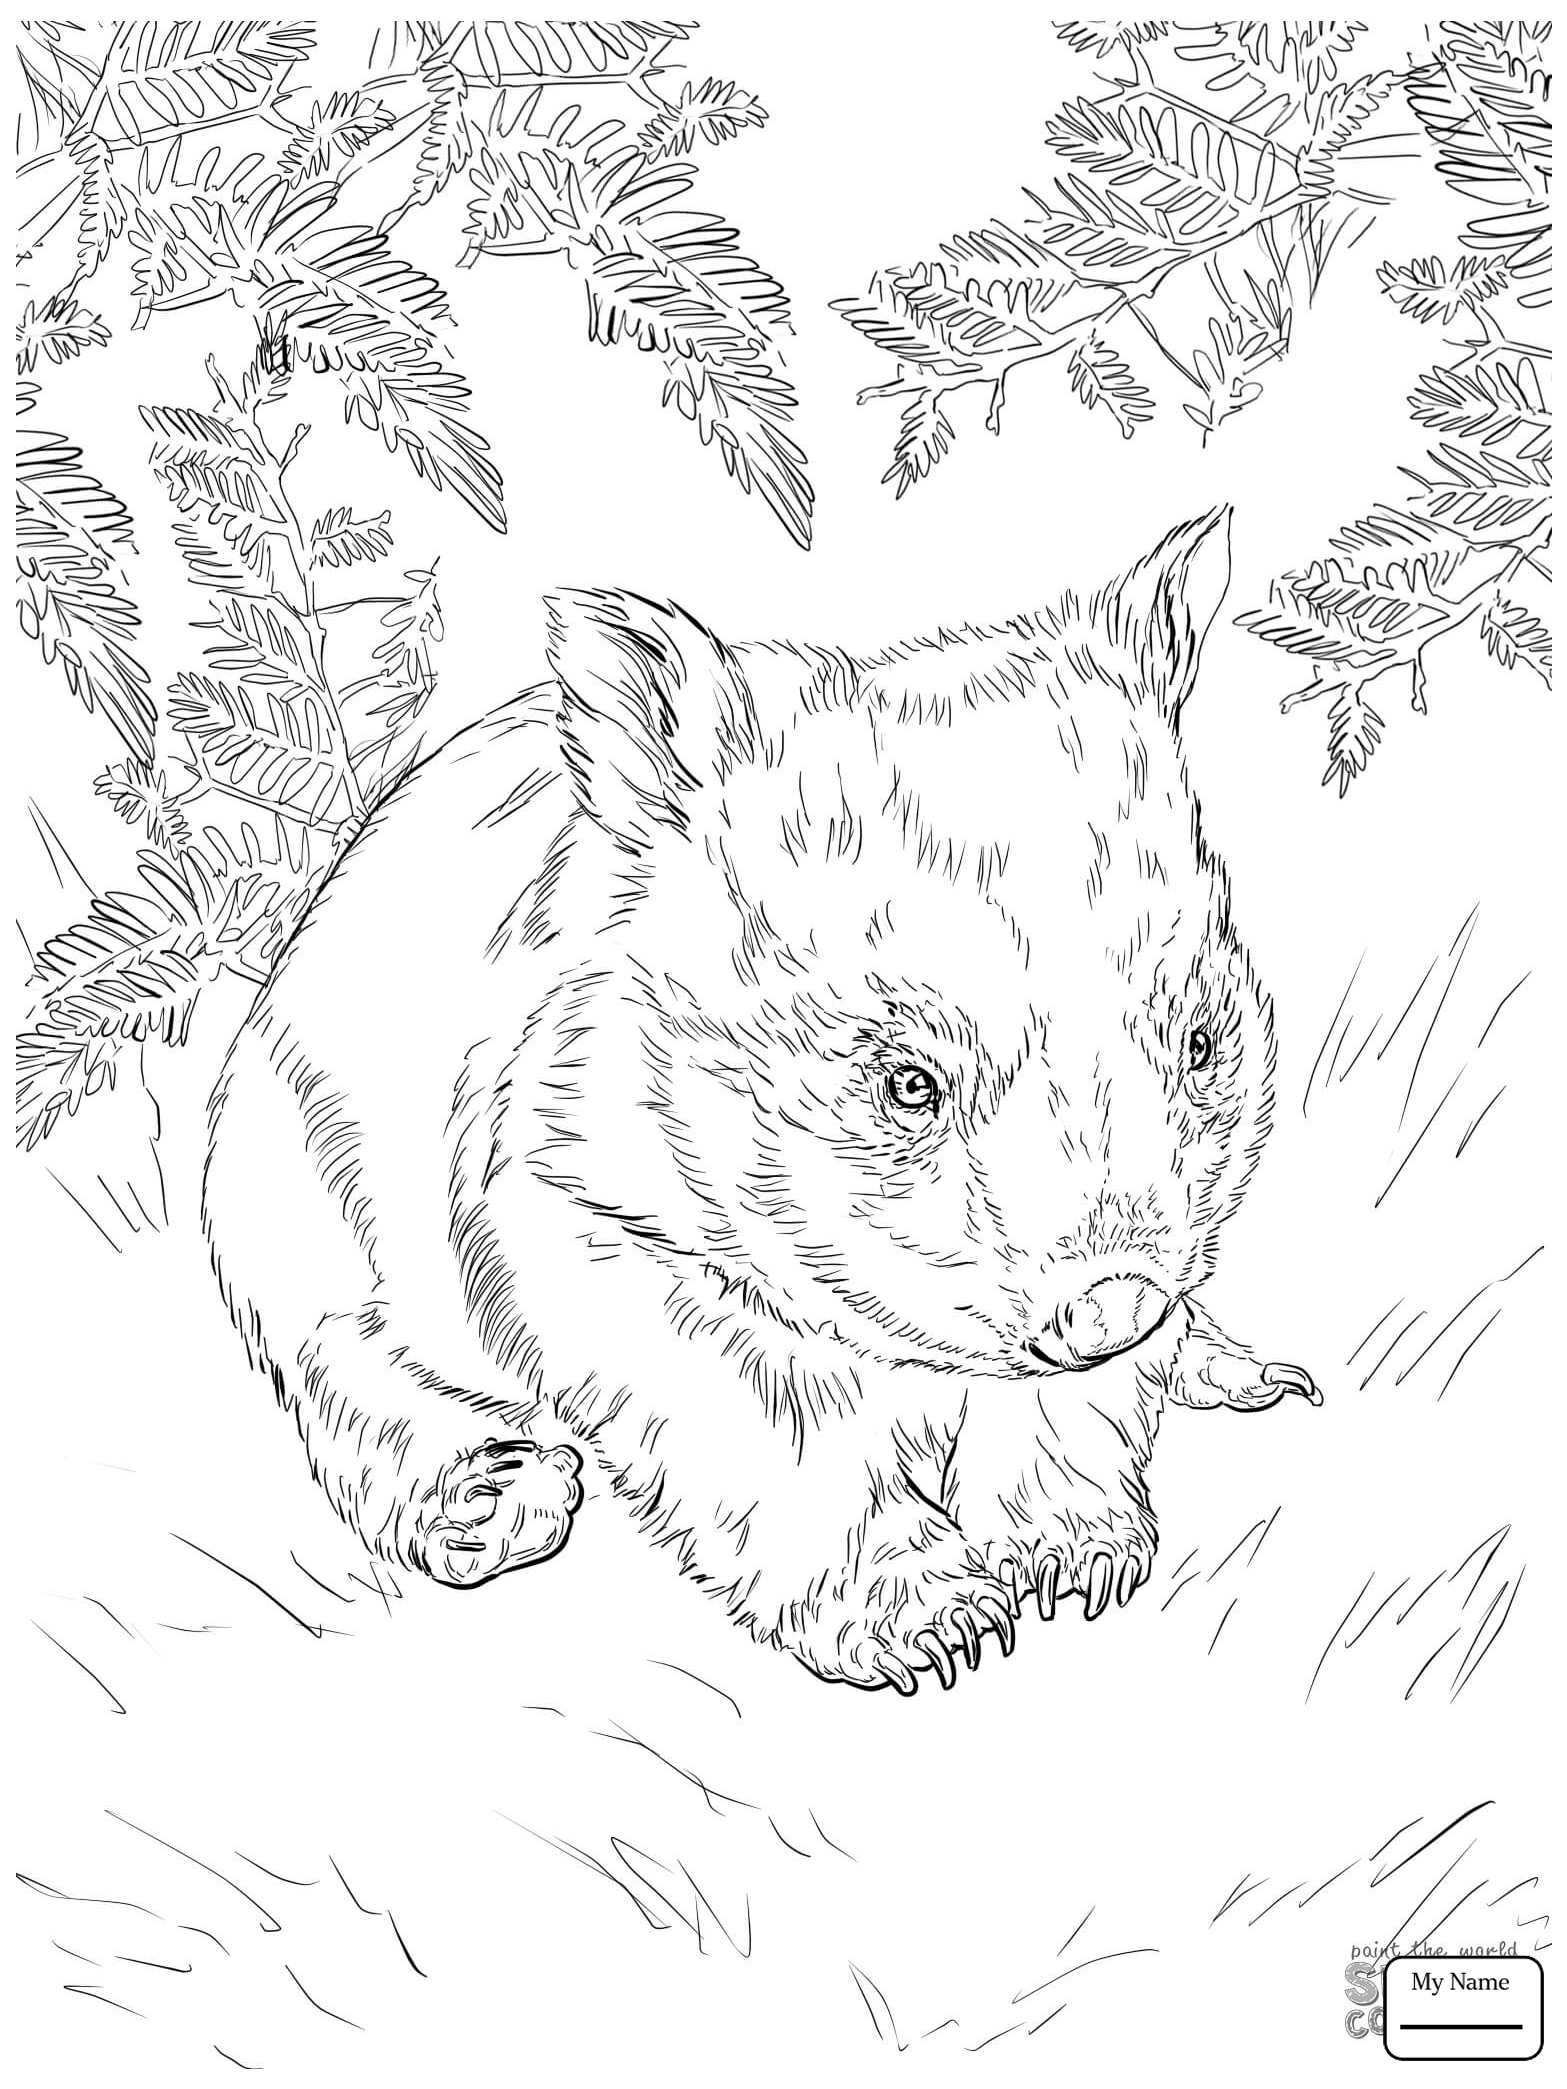 wombat colouring pages wombat cartoon wombat coloring page animals town pages wombat colouring